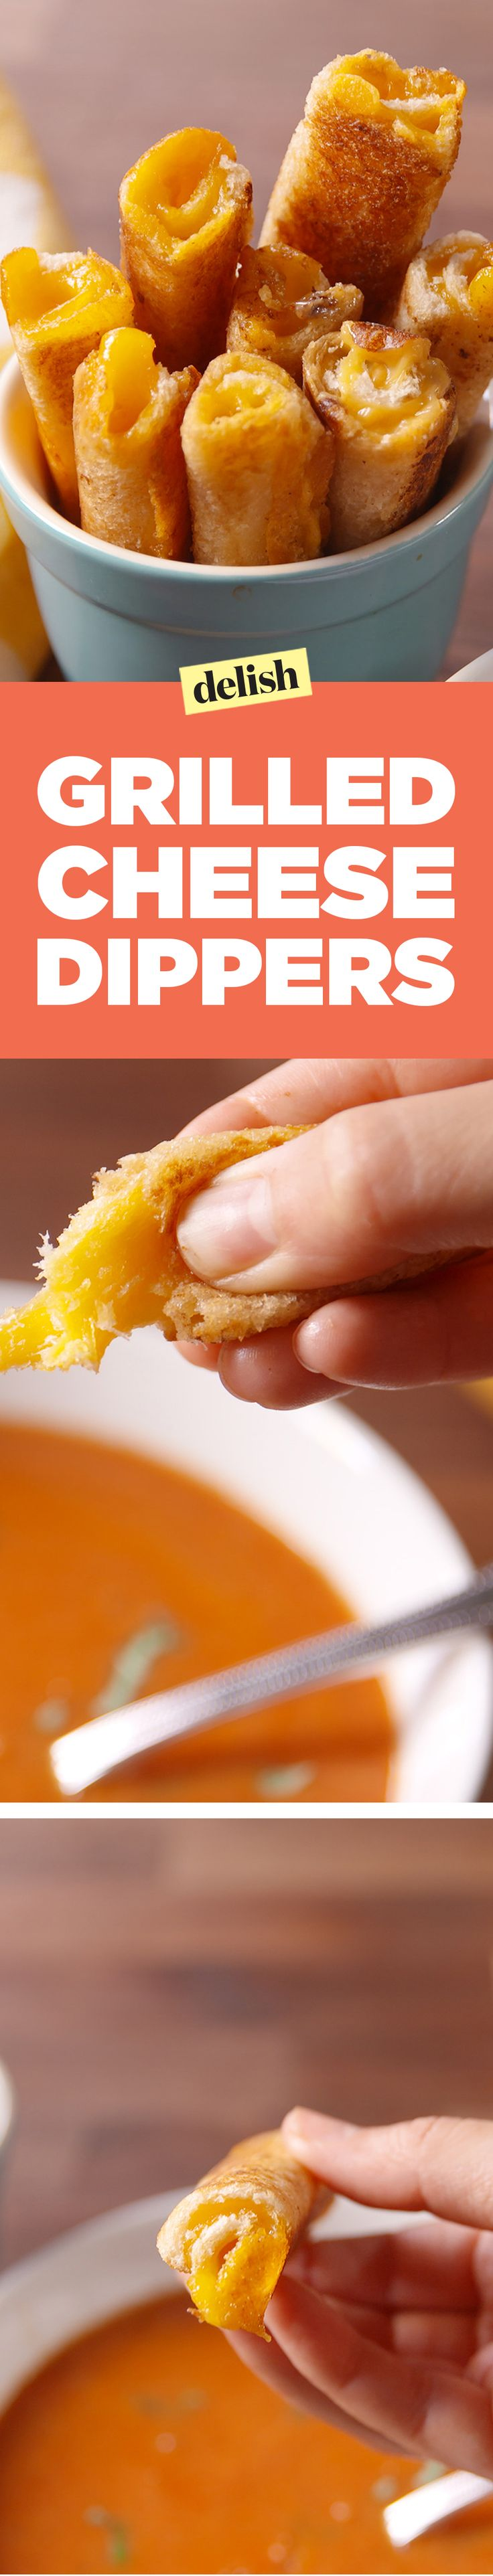 Grilled cheese dippers make eating tomato soup so much more fun! Get the recipe on Delish.com.